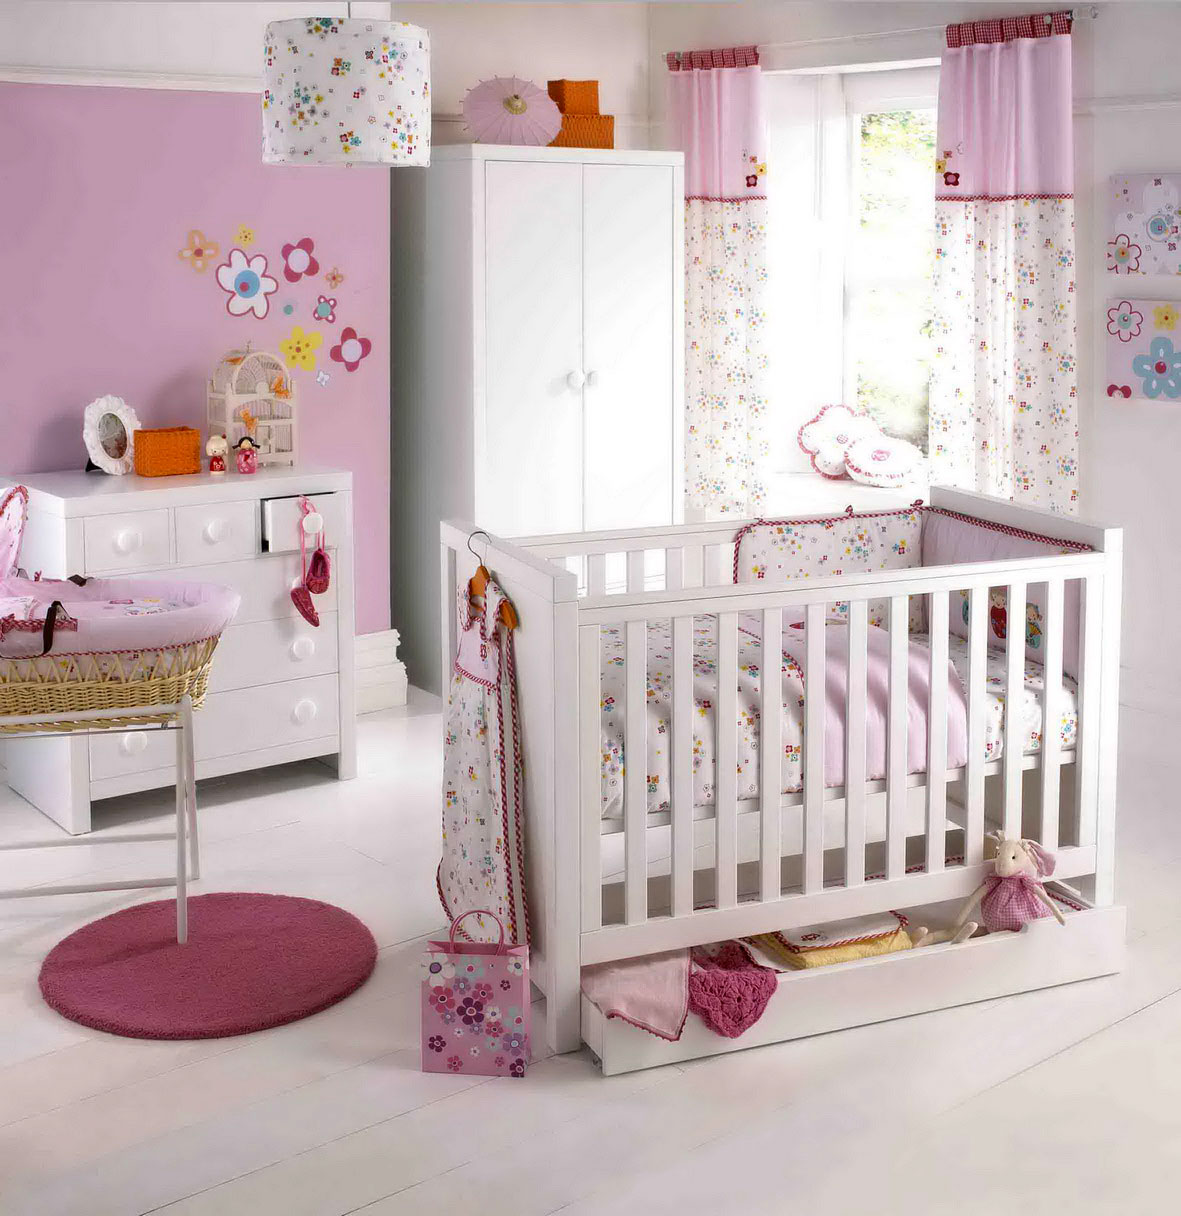 What you should look for while designing your baby's room